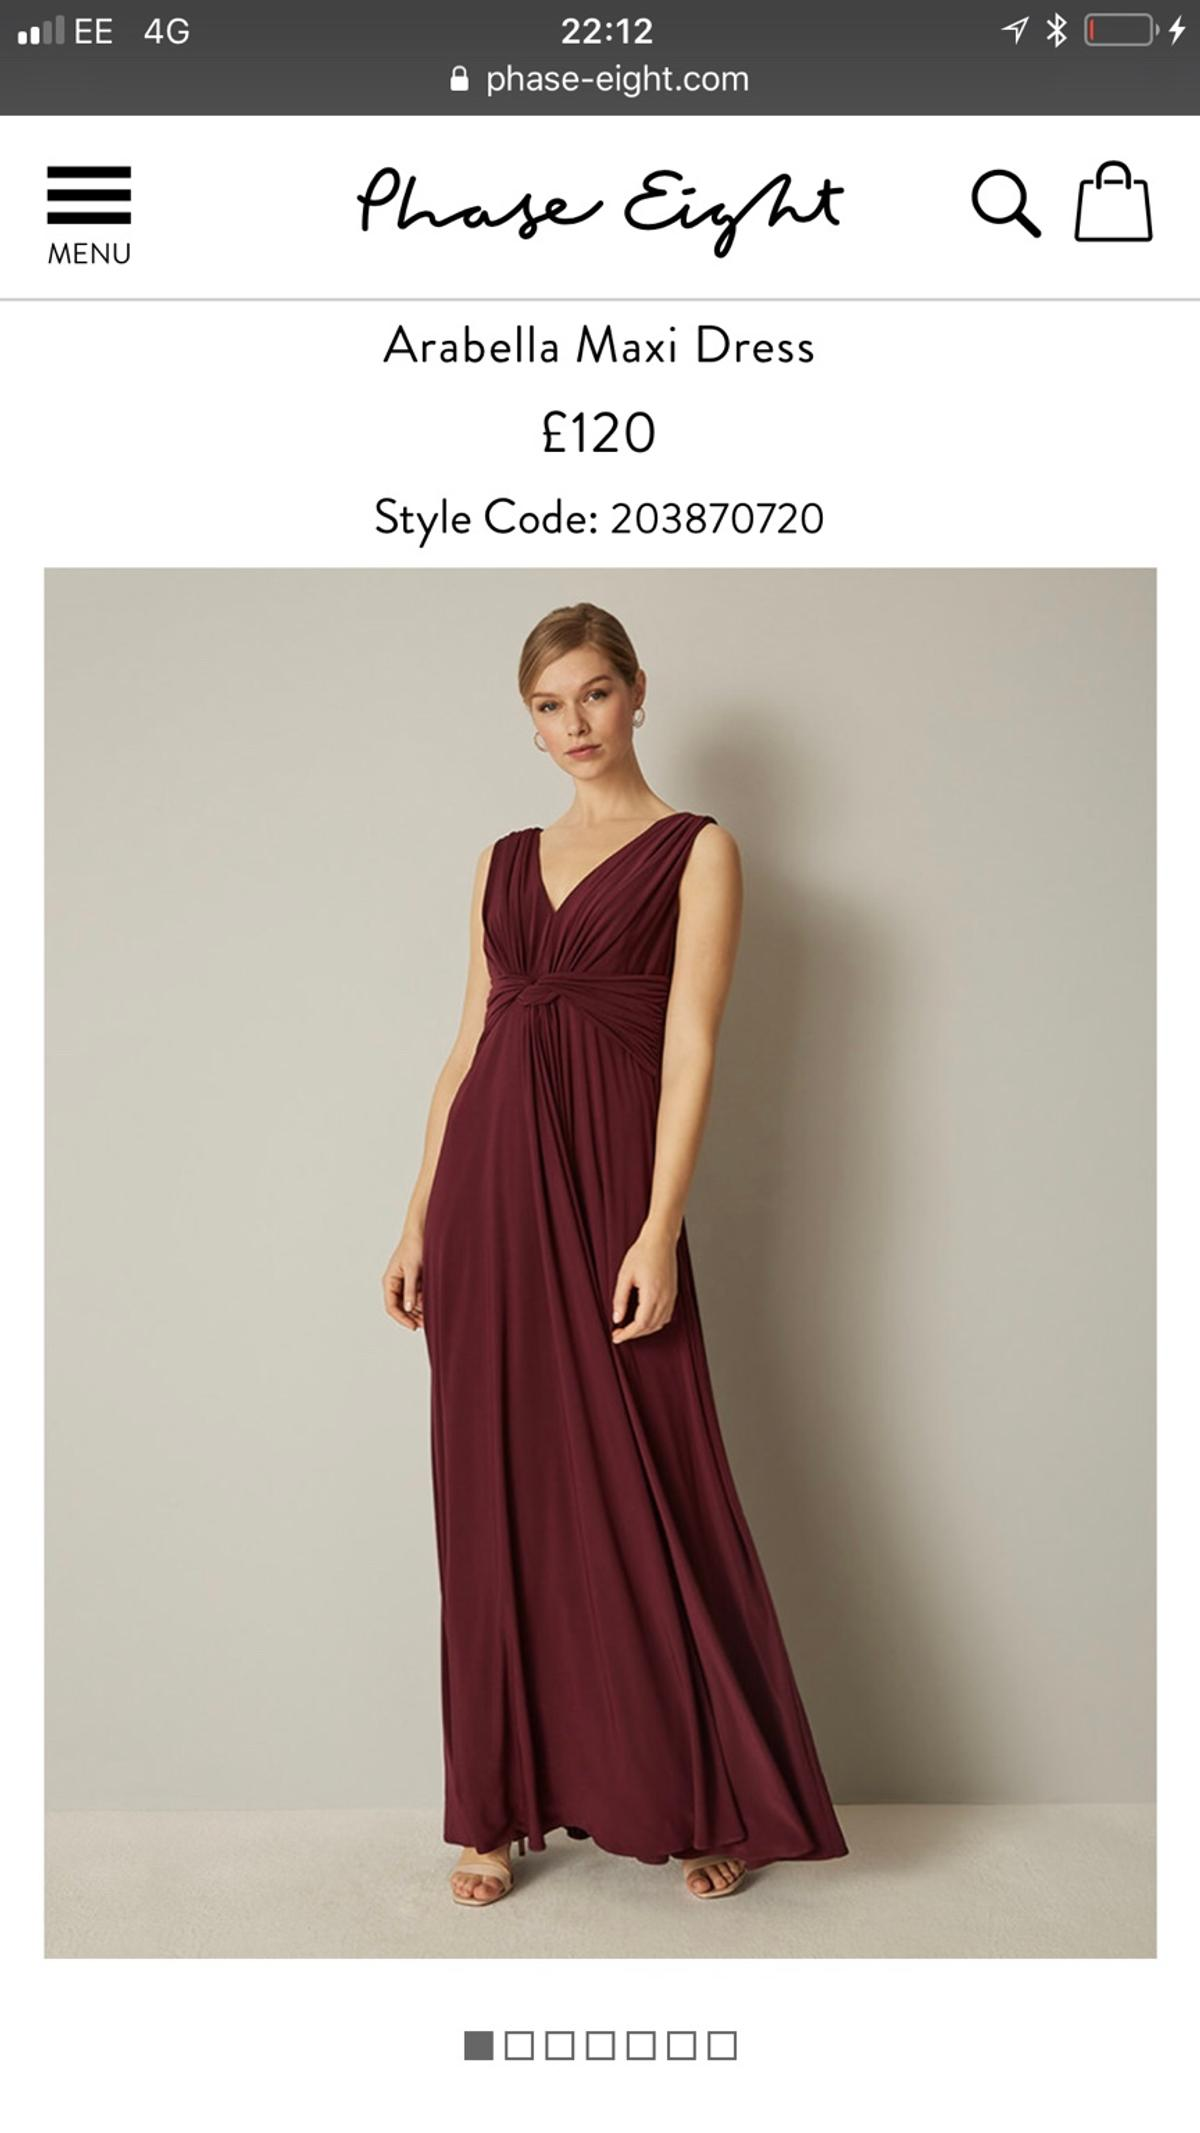 PHASE EIGHT bridesmaid dress Size 10 in